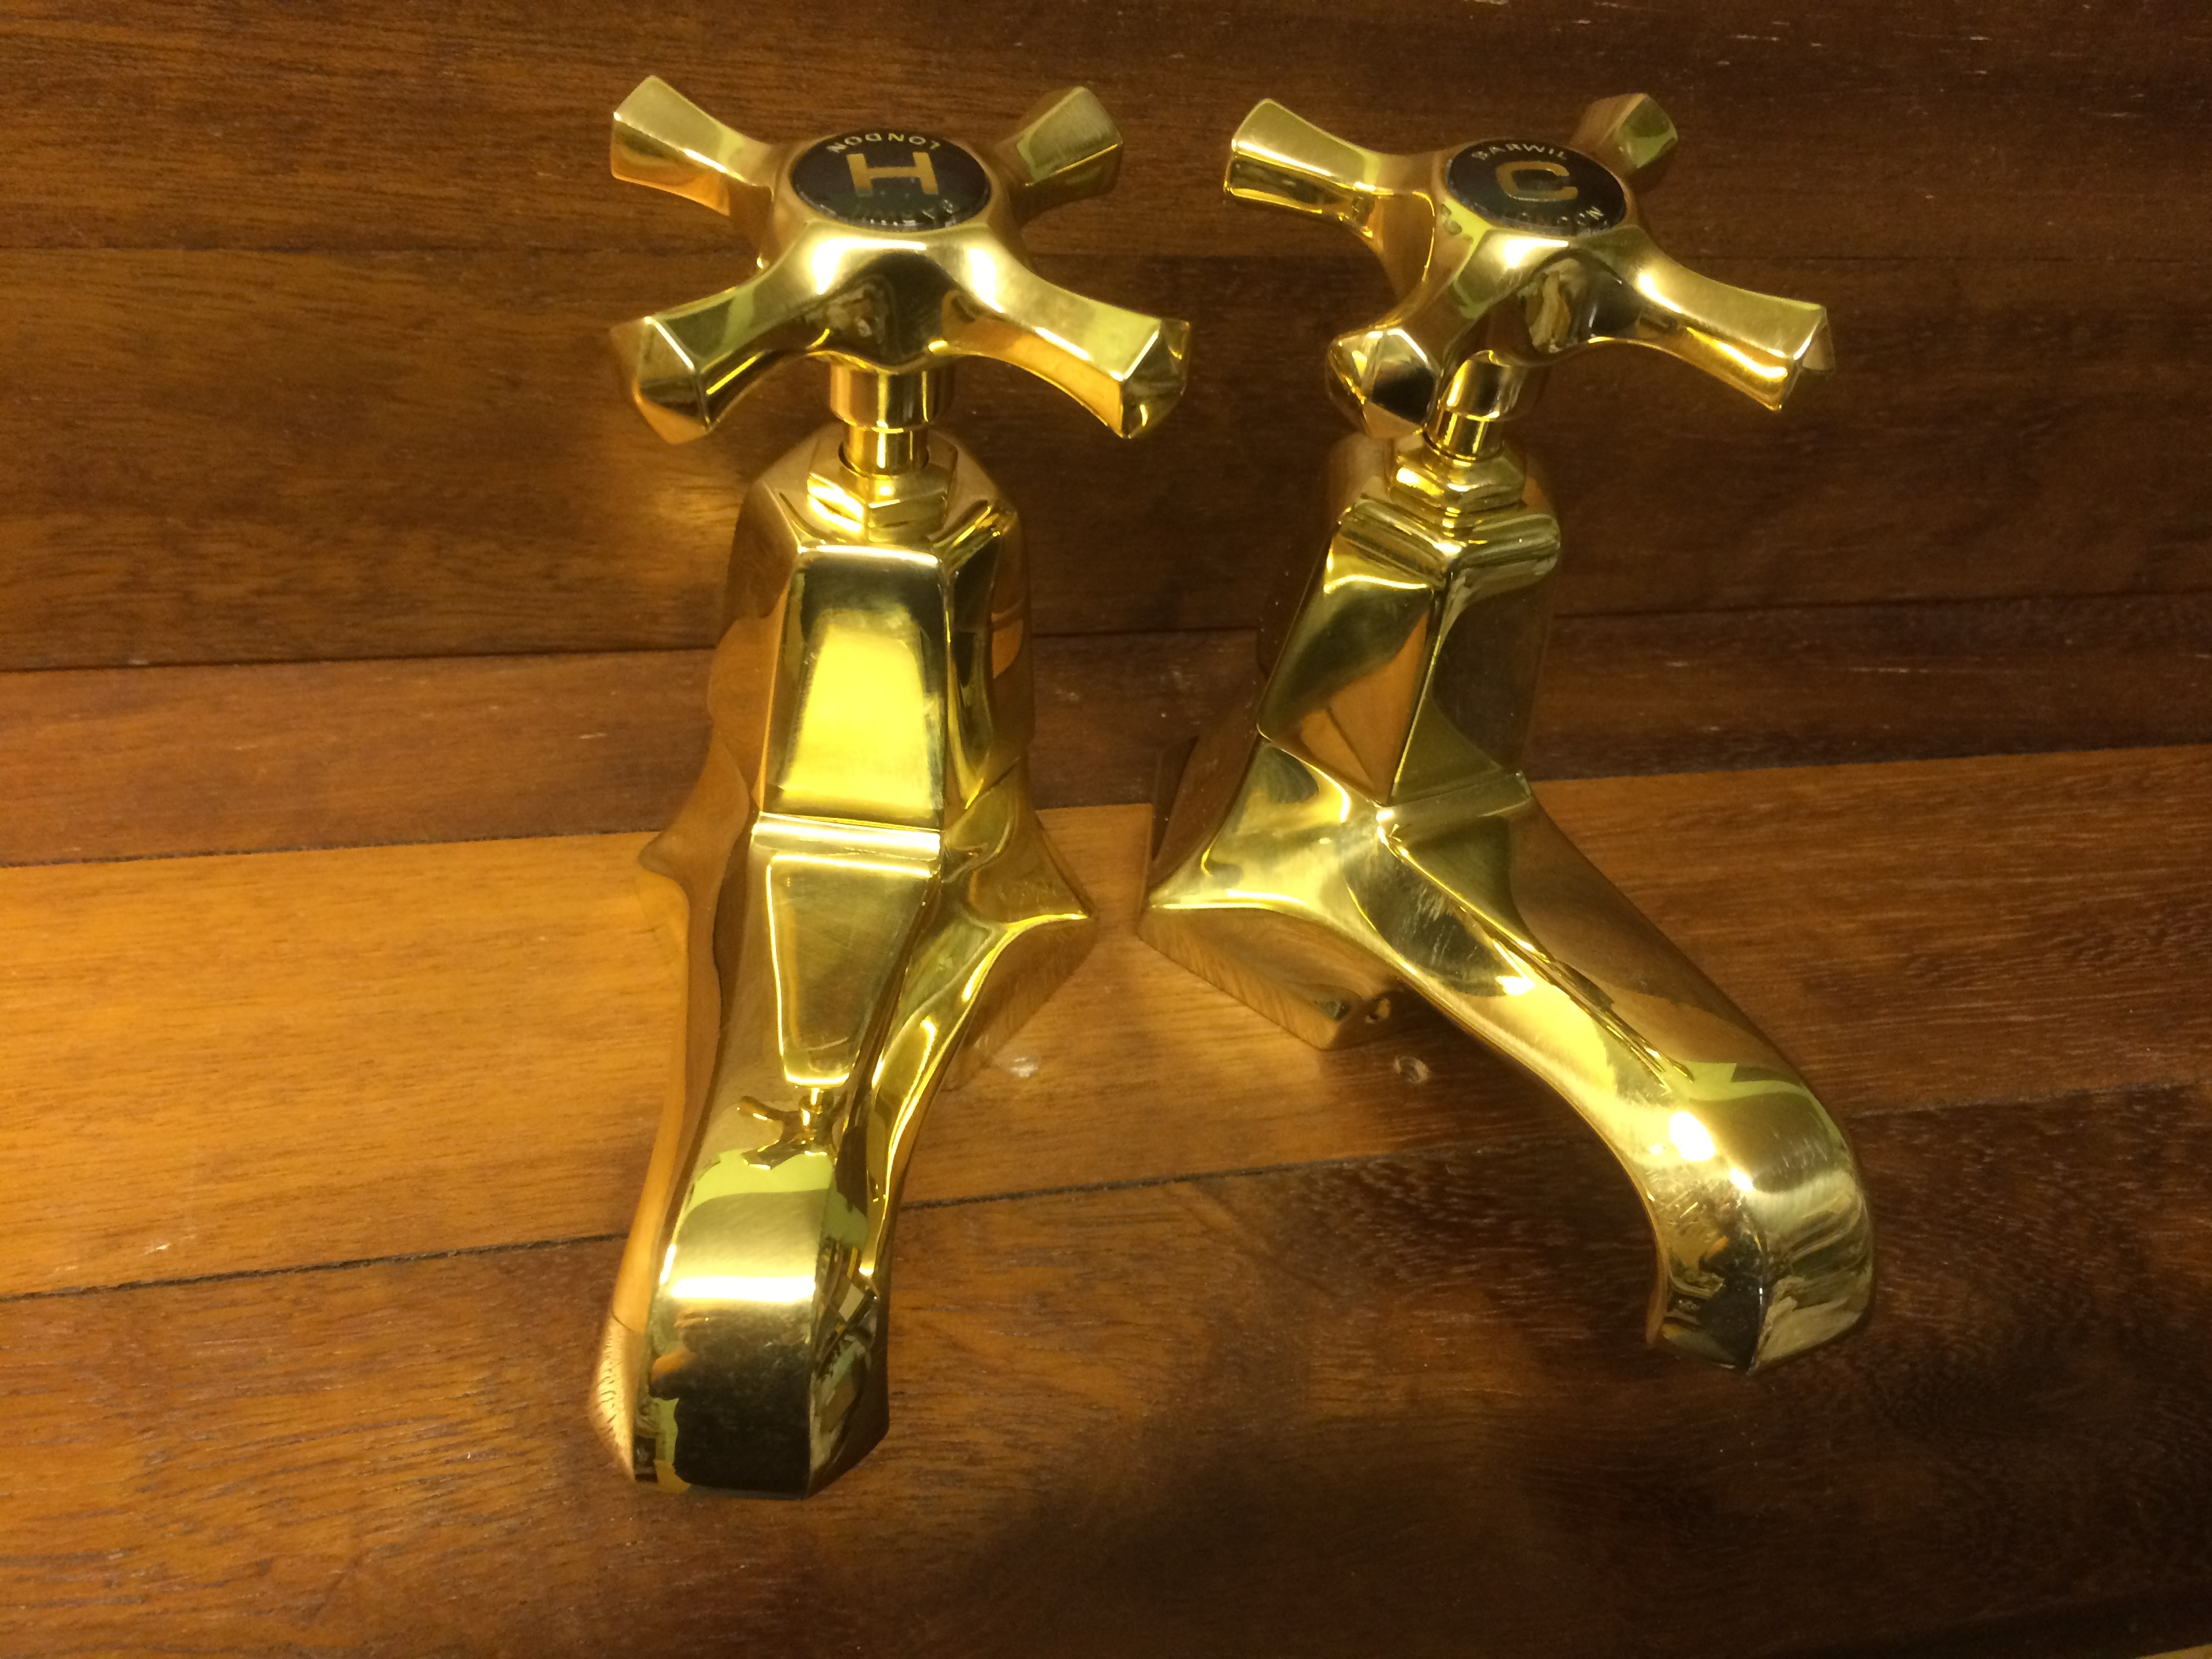 Art-Deco basin taps in polished brass.